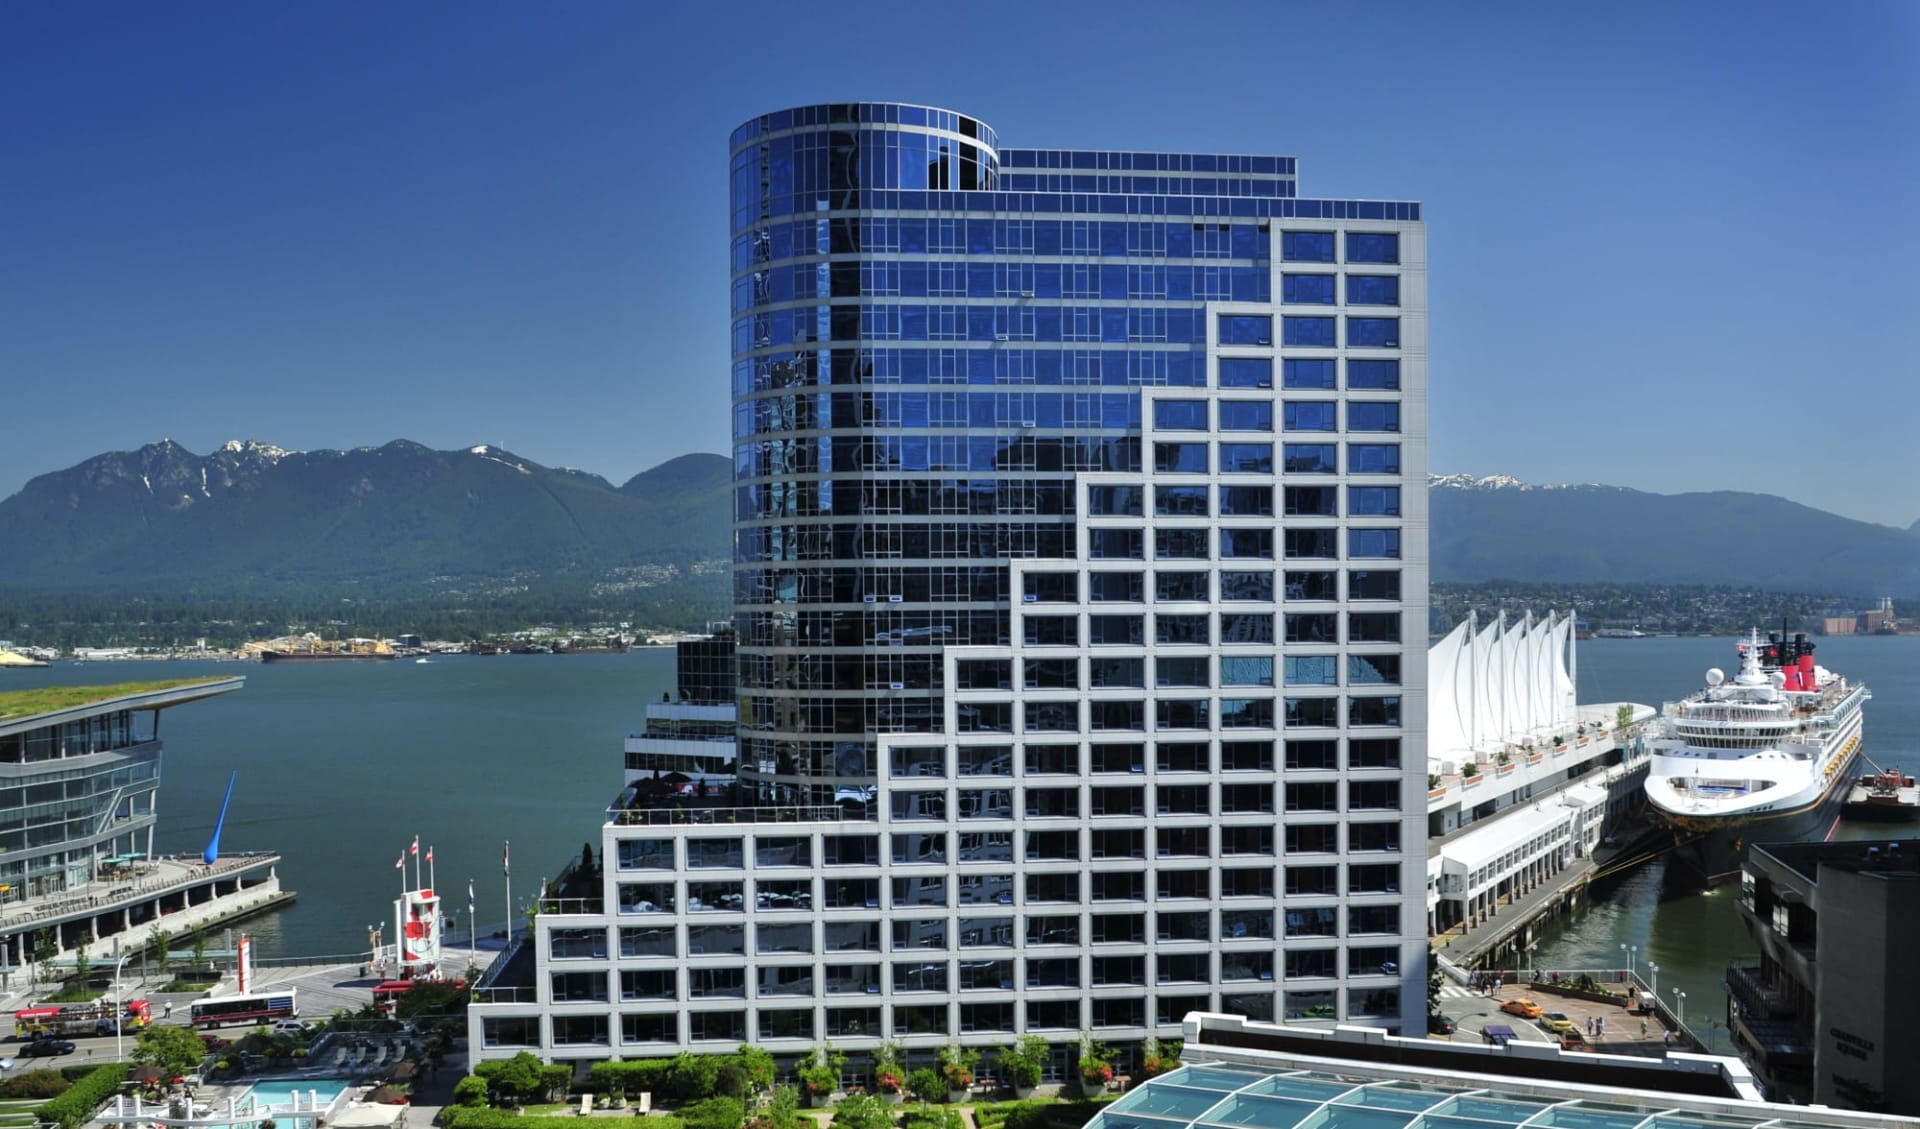 The Fairmont Waterfront in Vancouver: exterior_Fairmont Waterfront_FrontalViewWithHarbour